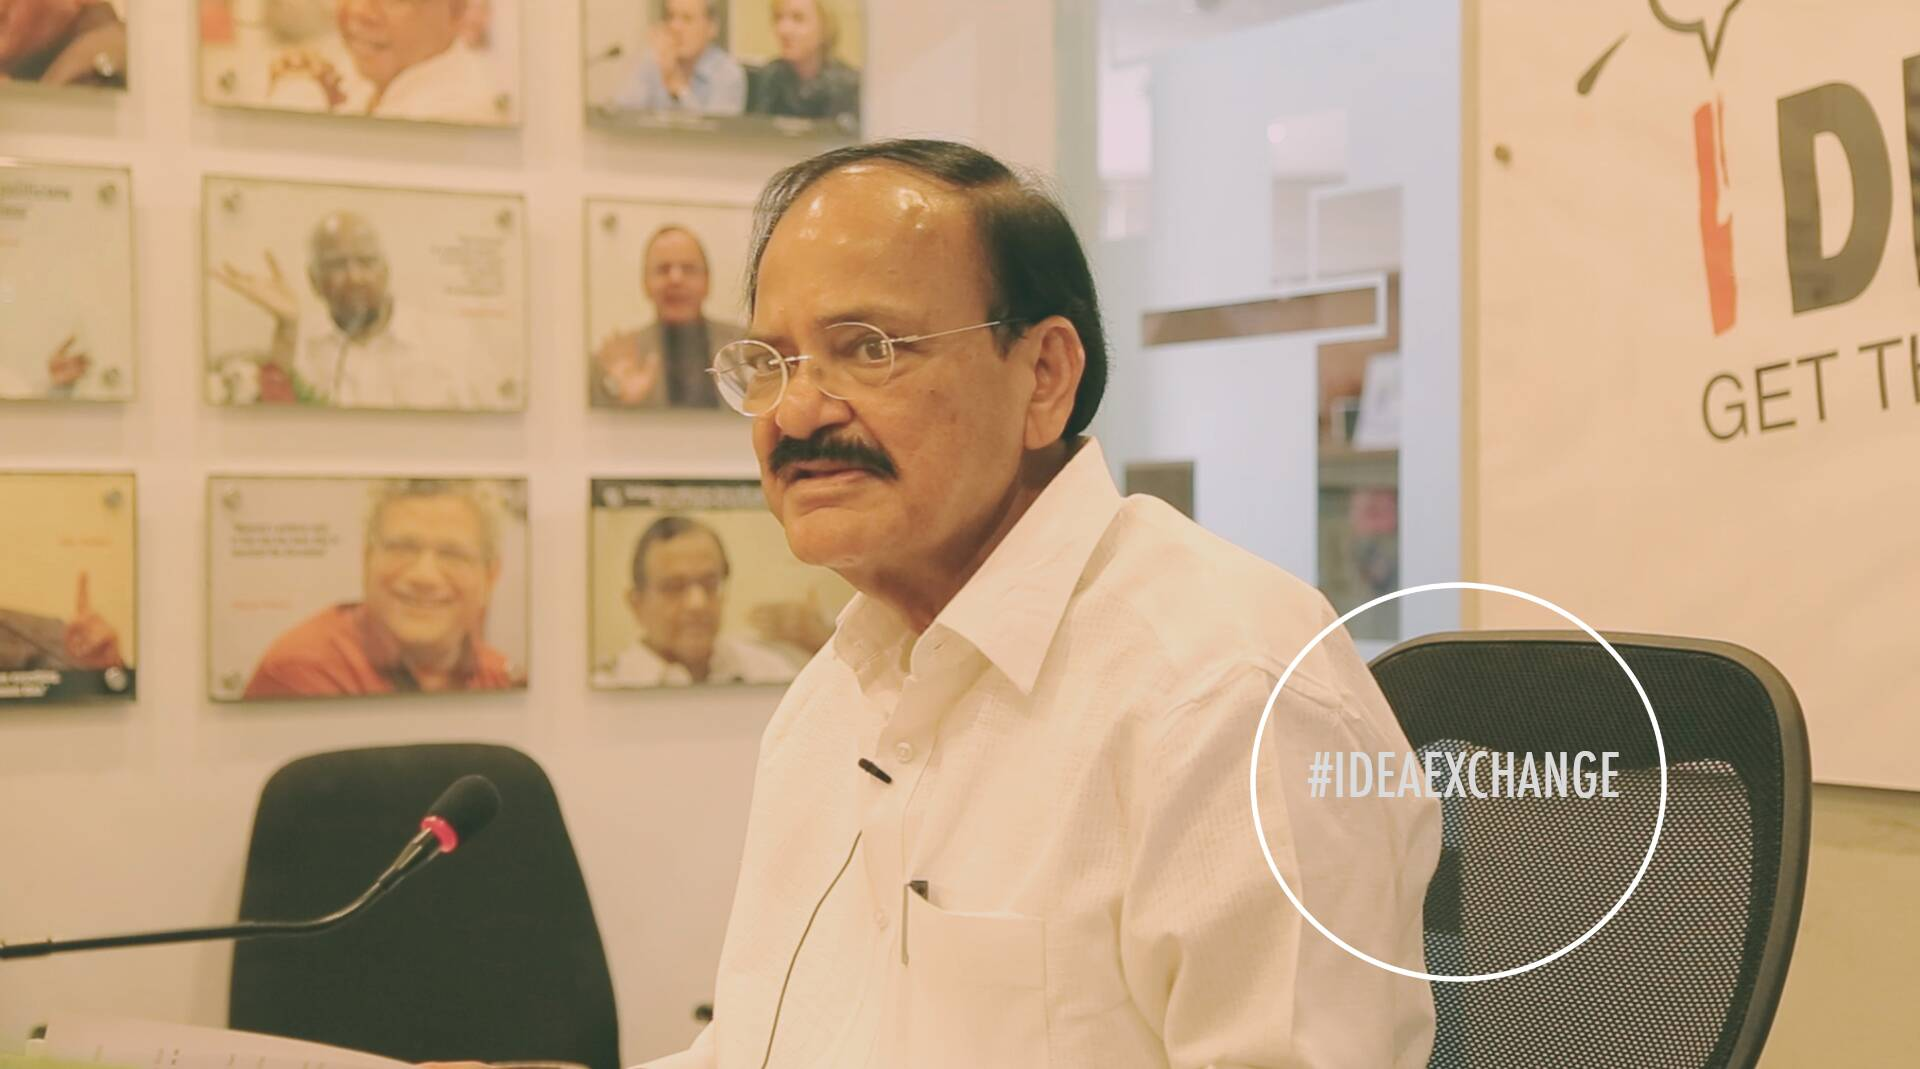 Cities cannot be built overnight. It'll take time: Venkaiah Naidu on smart cities